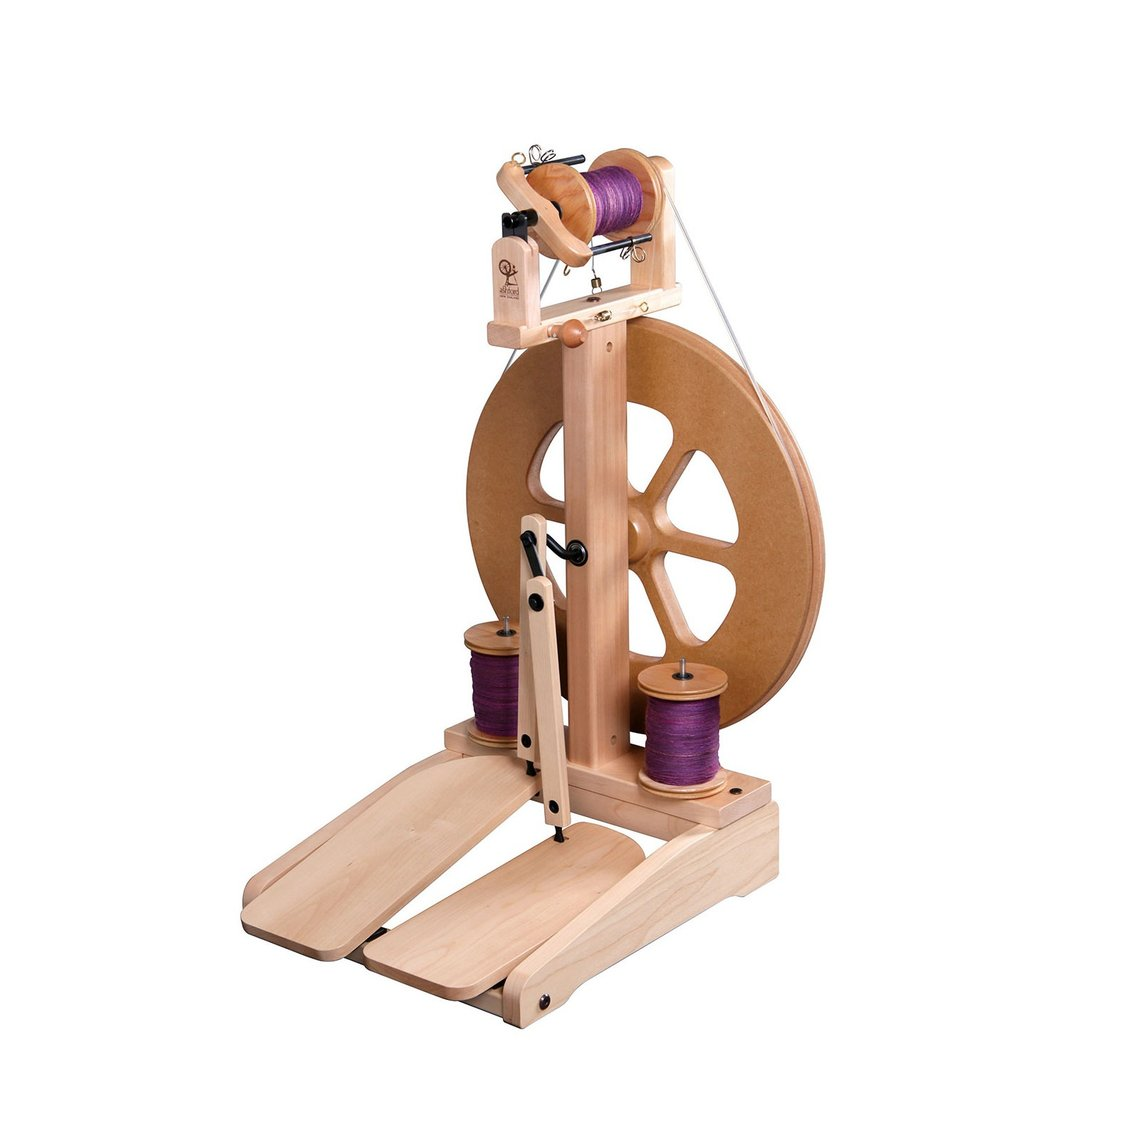 Looms and Wheels — Rêverie Yarn, Decor & Gifts